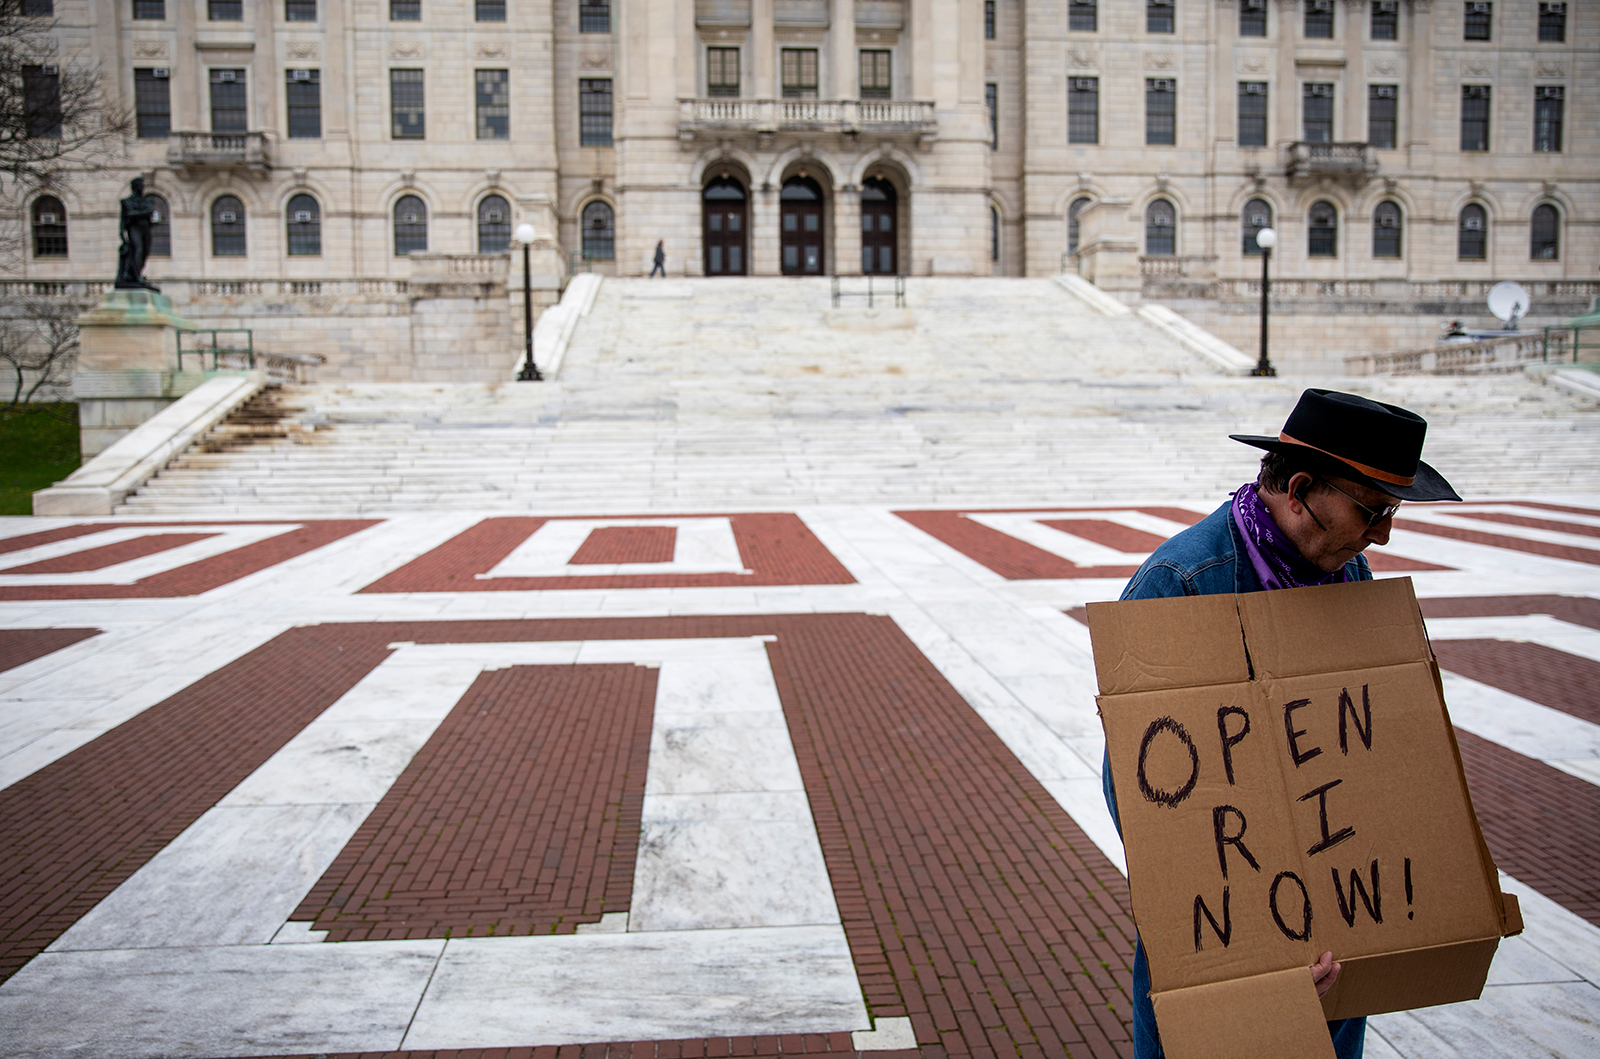 James Dunn stands outside the Statehouse with a handmade sign in favor of reopening the state economy as Rhode Island Gov. Gina Raimondo delivers her daily briefing inside, on Friday, May 1, in Providence.